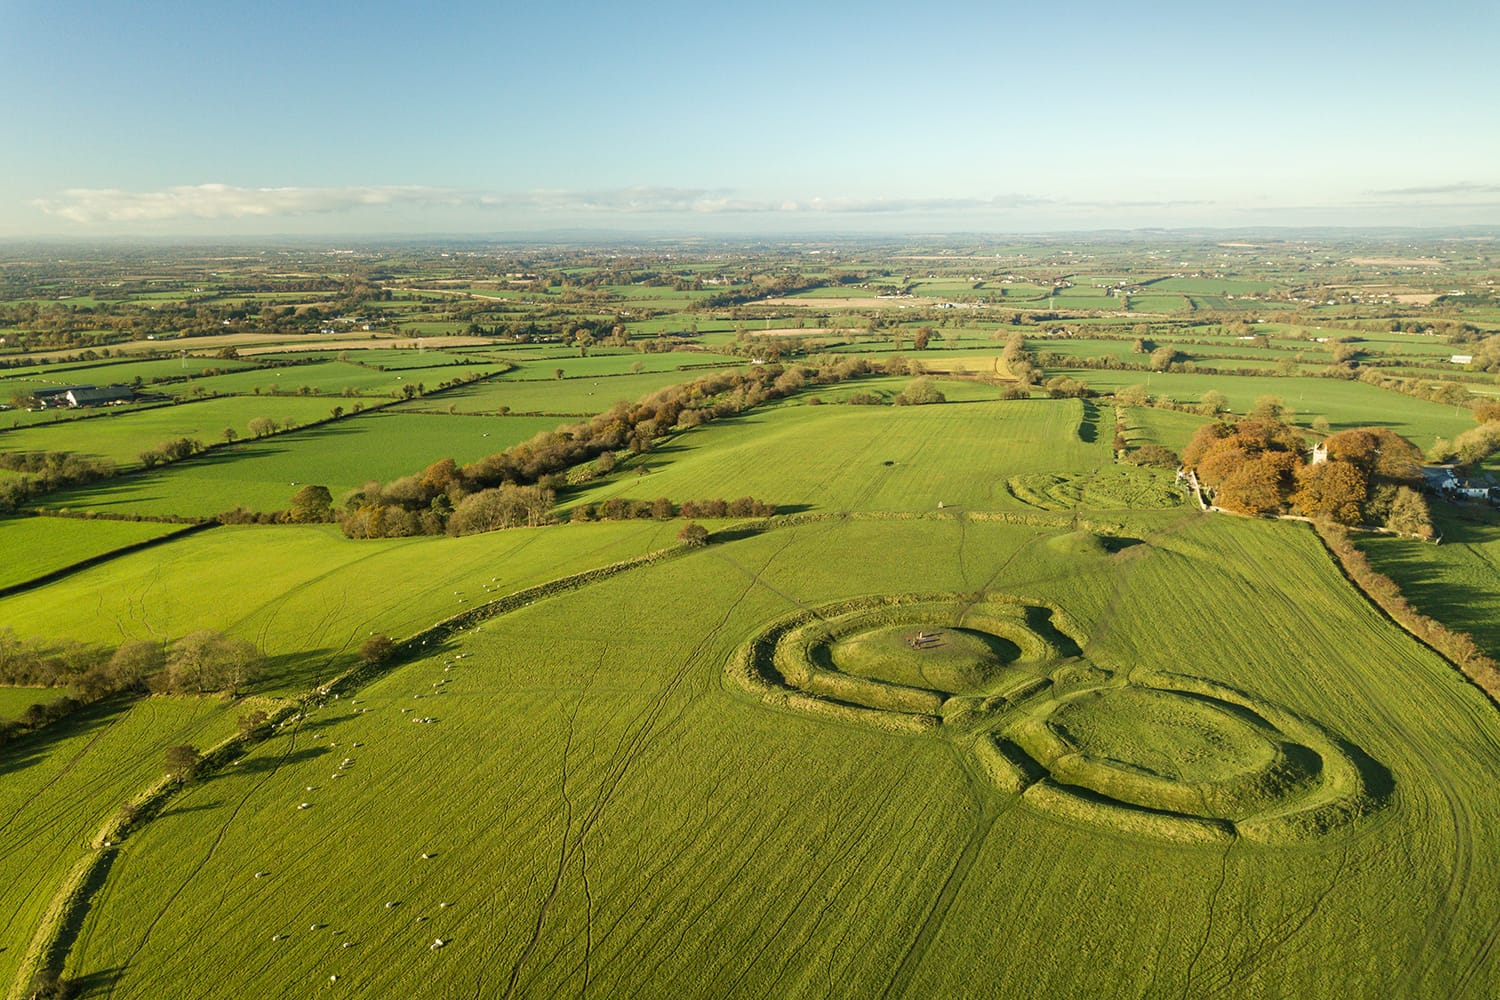 Aerial view of Hill of Tara in Ireland